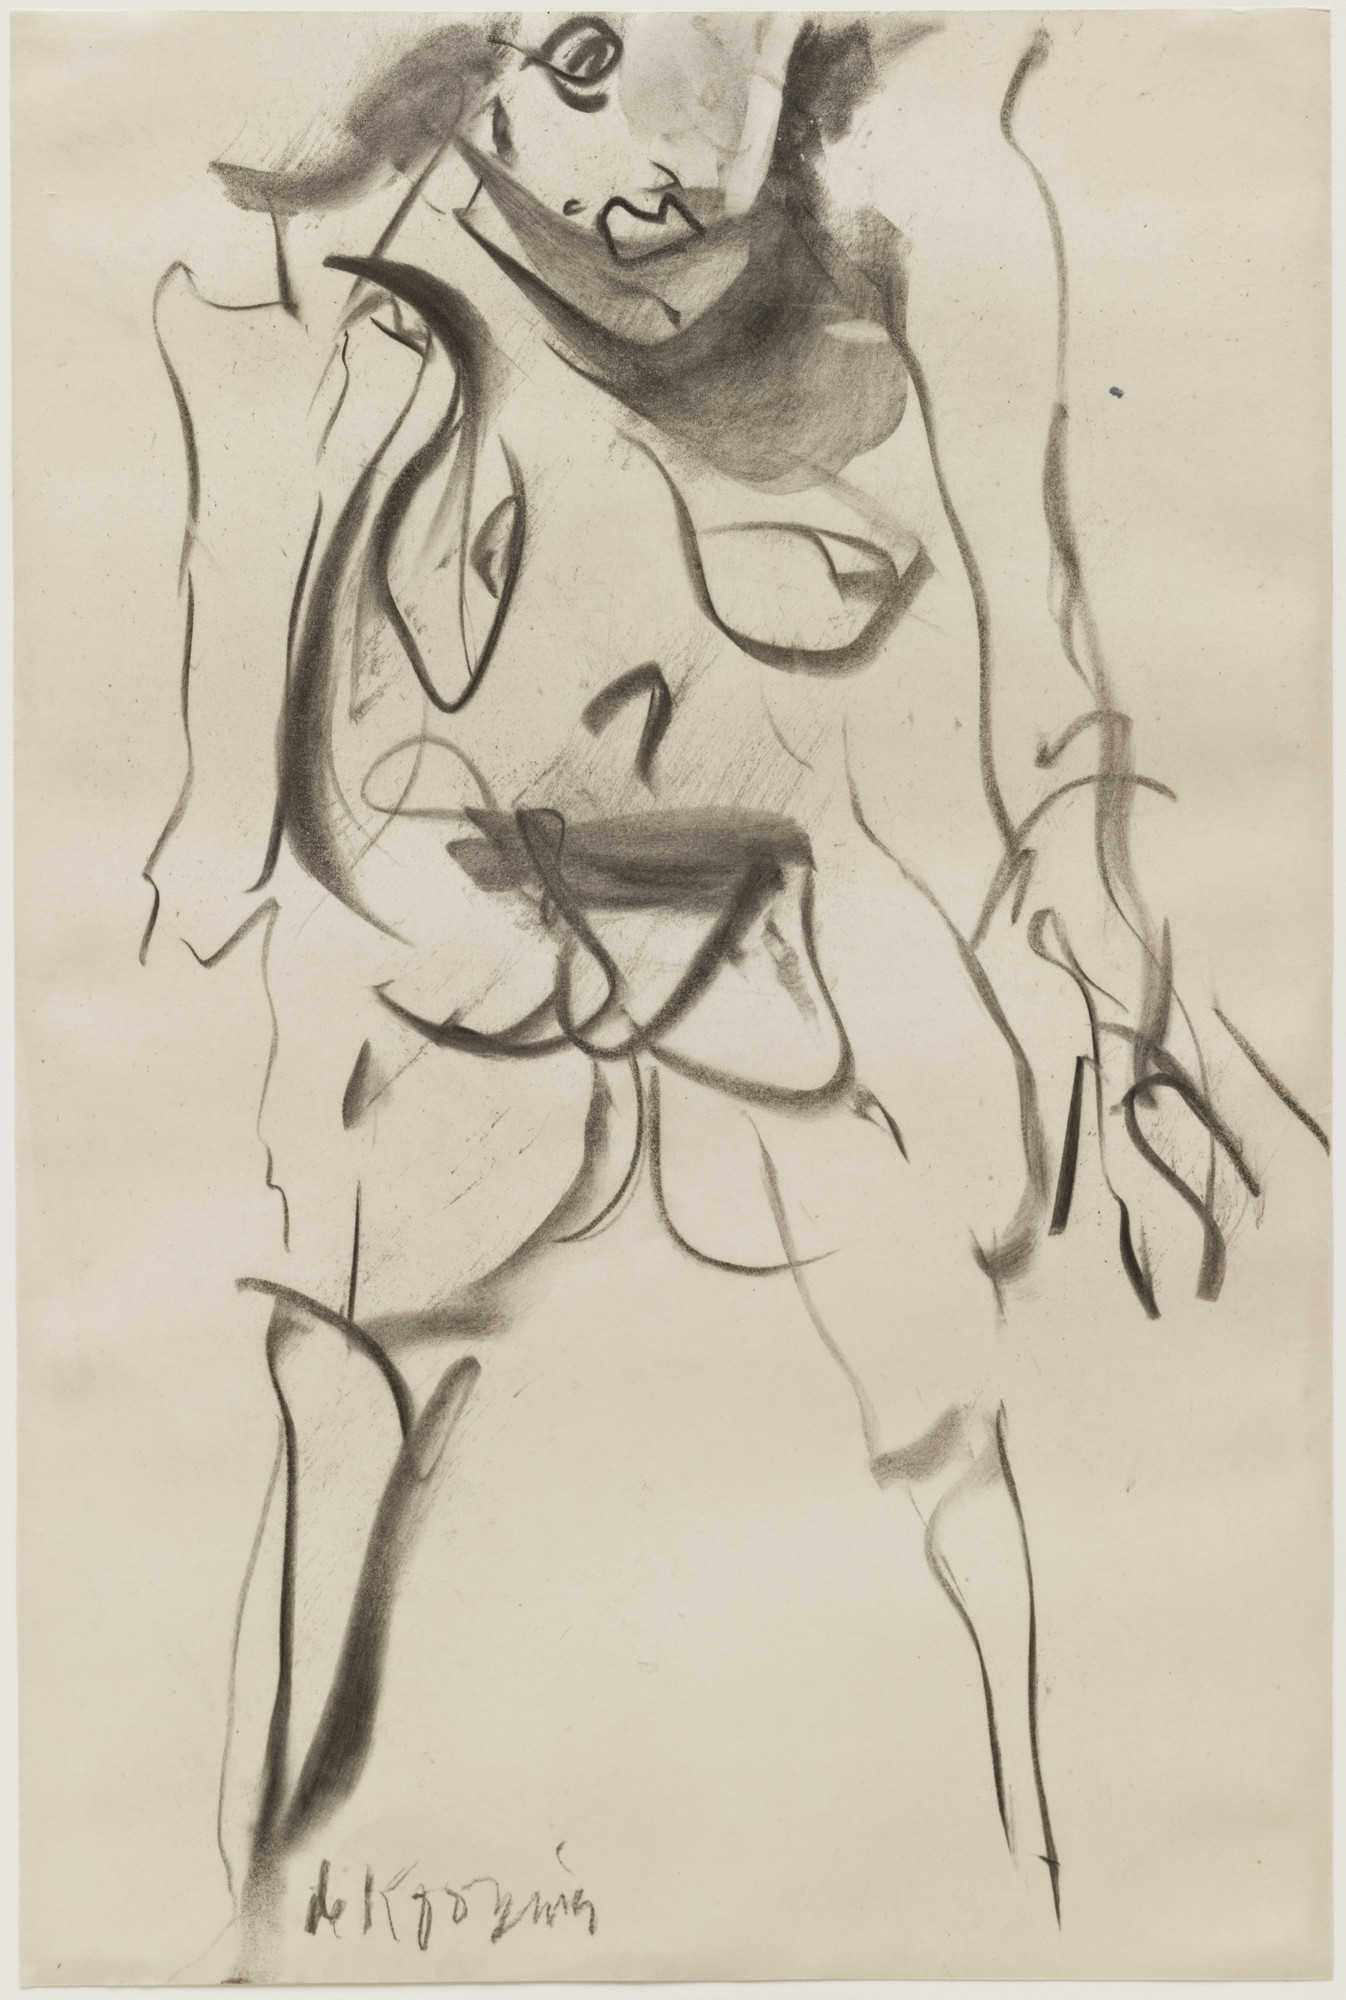 Willem de Kooning. Untitled. (1968)